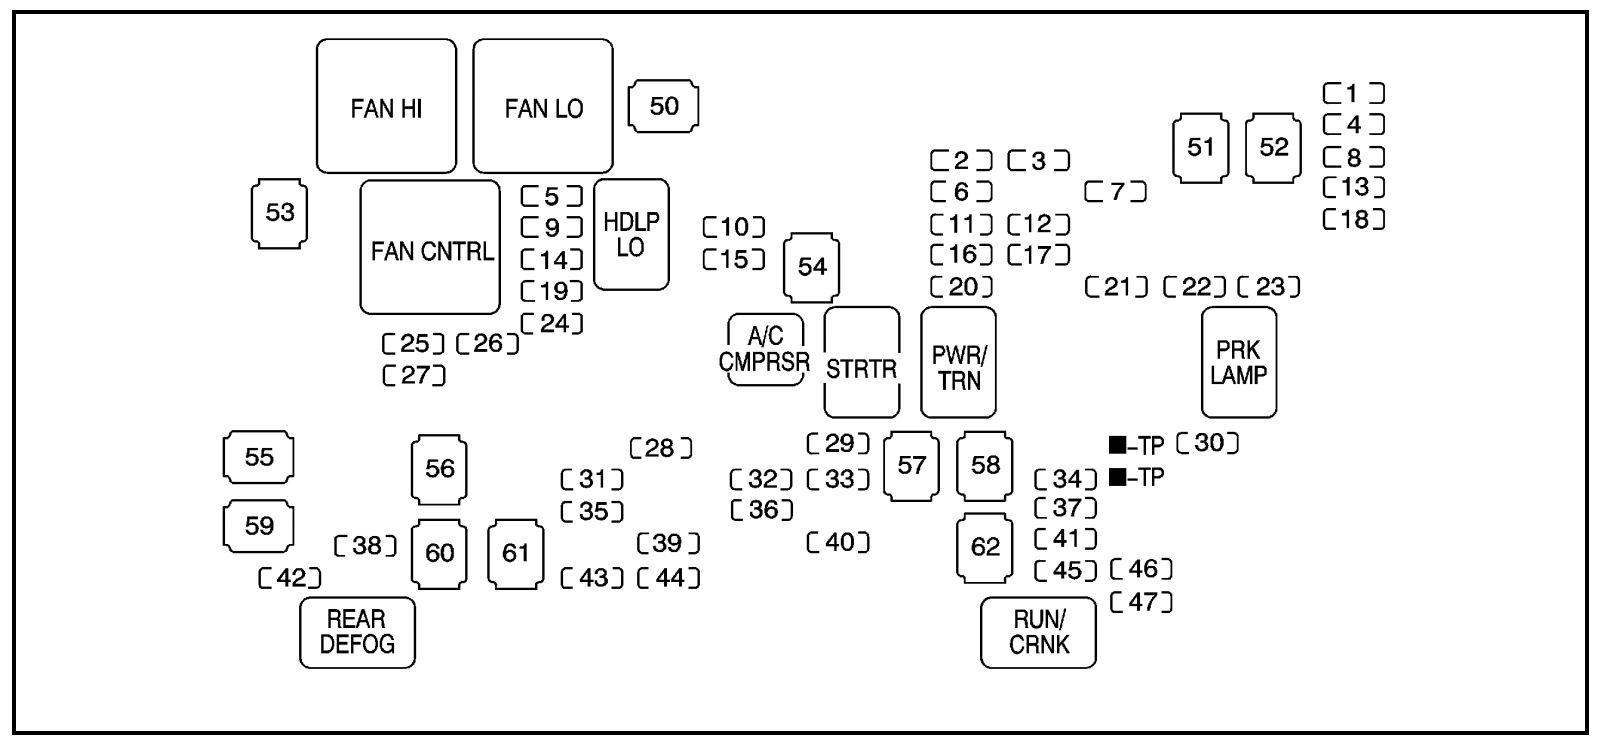 hummer h2 (2009 – 2010) – fuse box diagram - carknowledge.info 2005 hummer h2 fuse box diagram  carknowledge.info